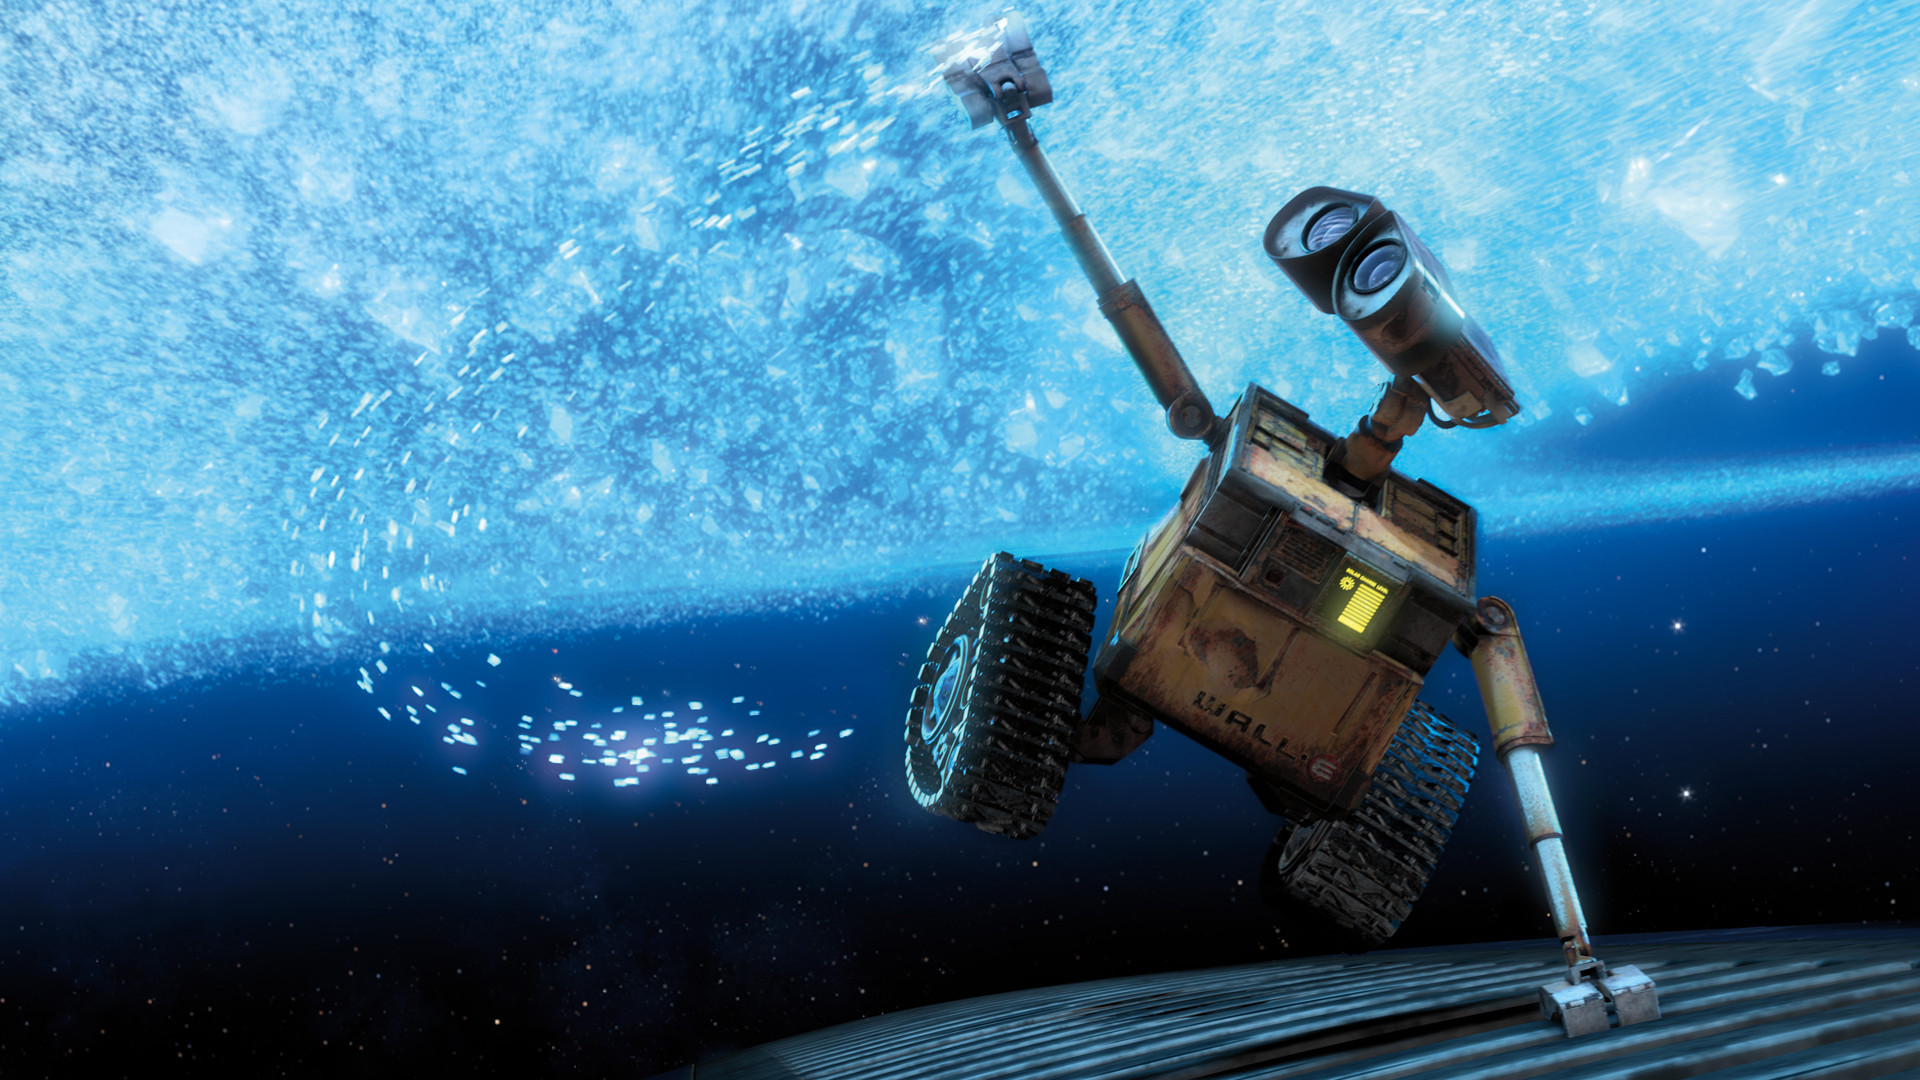 wall·e full hd wallpaper and background image | 1920x1080 | id:674629